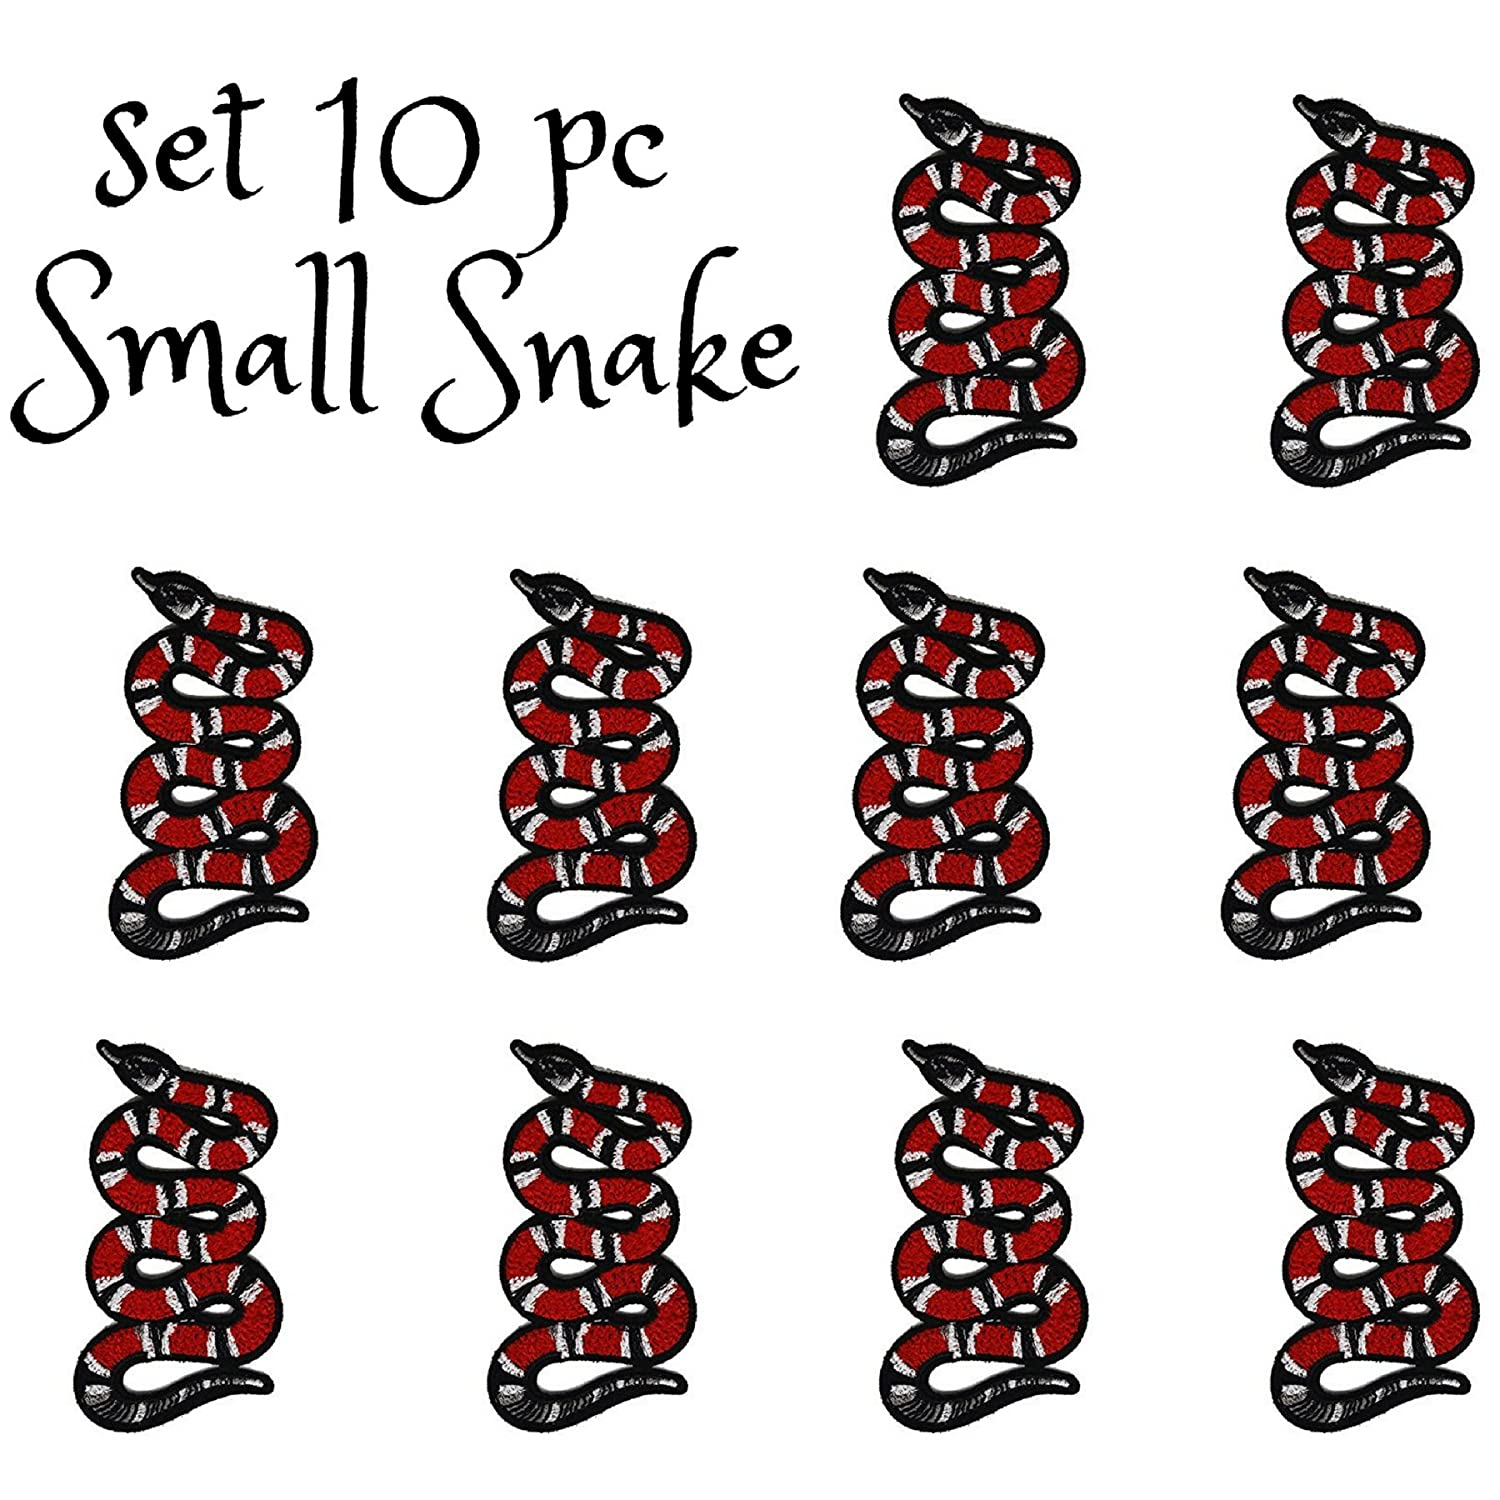 10 PCS Small Red Snake Patches Embroidered Iron-On Applique Patches Stickers Embroidered Sew Patches for Clothing Bags Shoes by Special100%